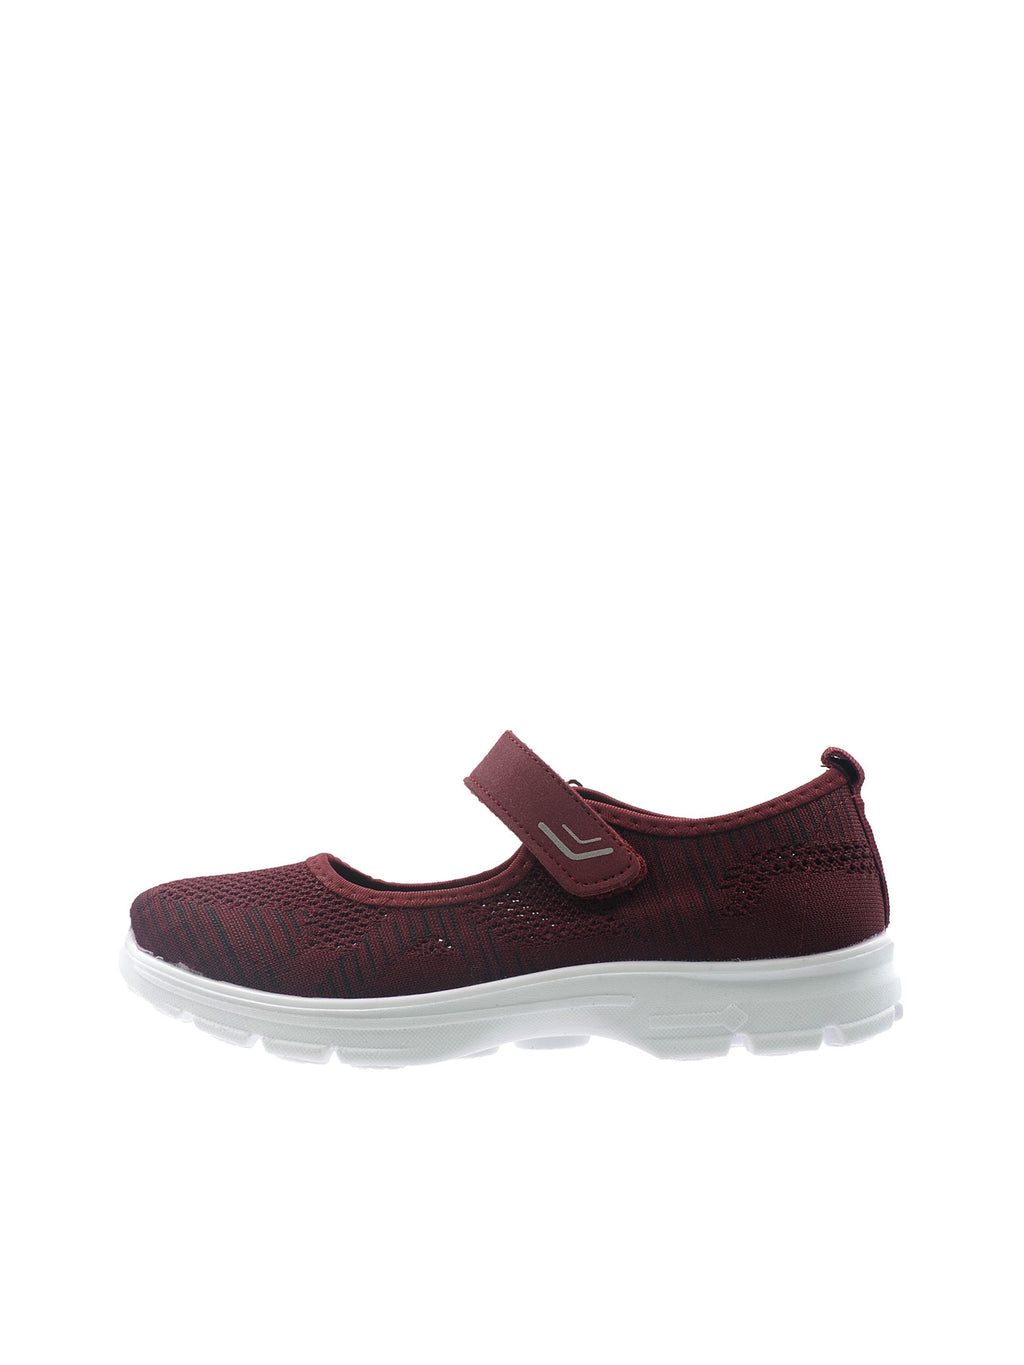 Larrie Red Chichi Casual Sporty Flats